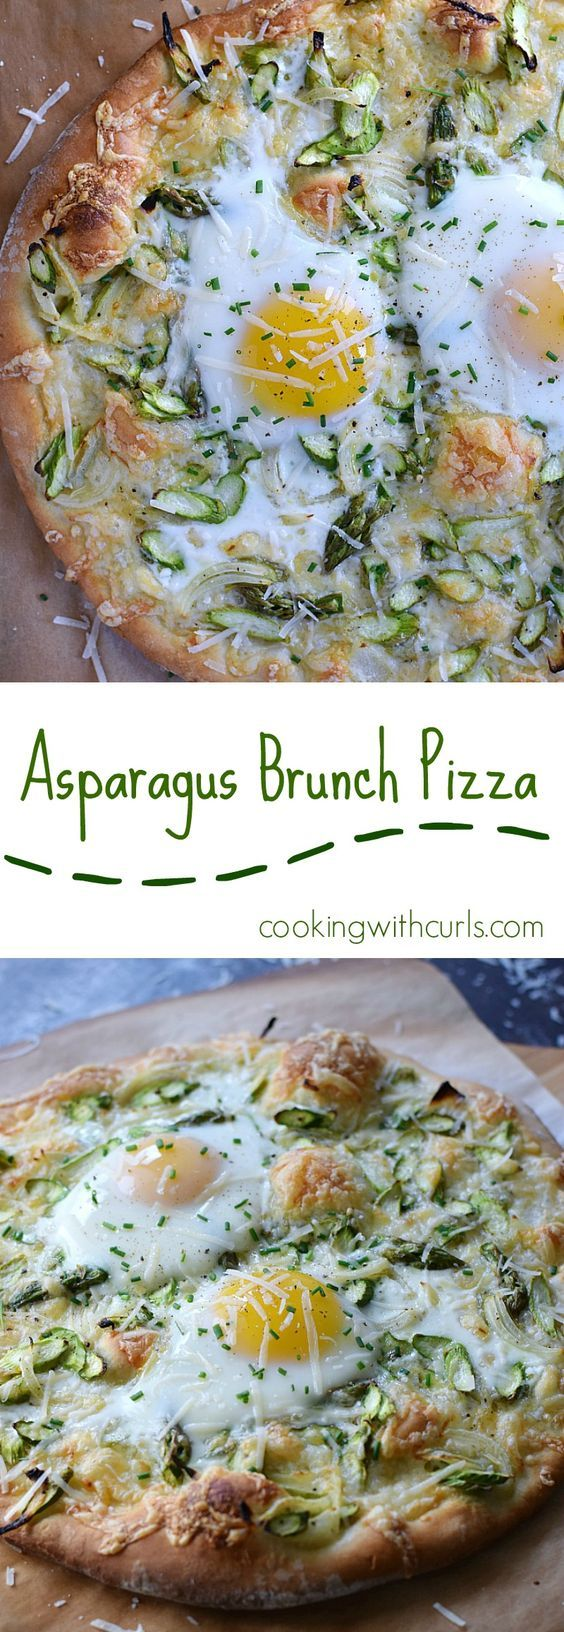 Celebrate Spring with a delicious Asparagus Brunch Pizza at your next family gathering | cookingwithcurls.com